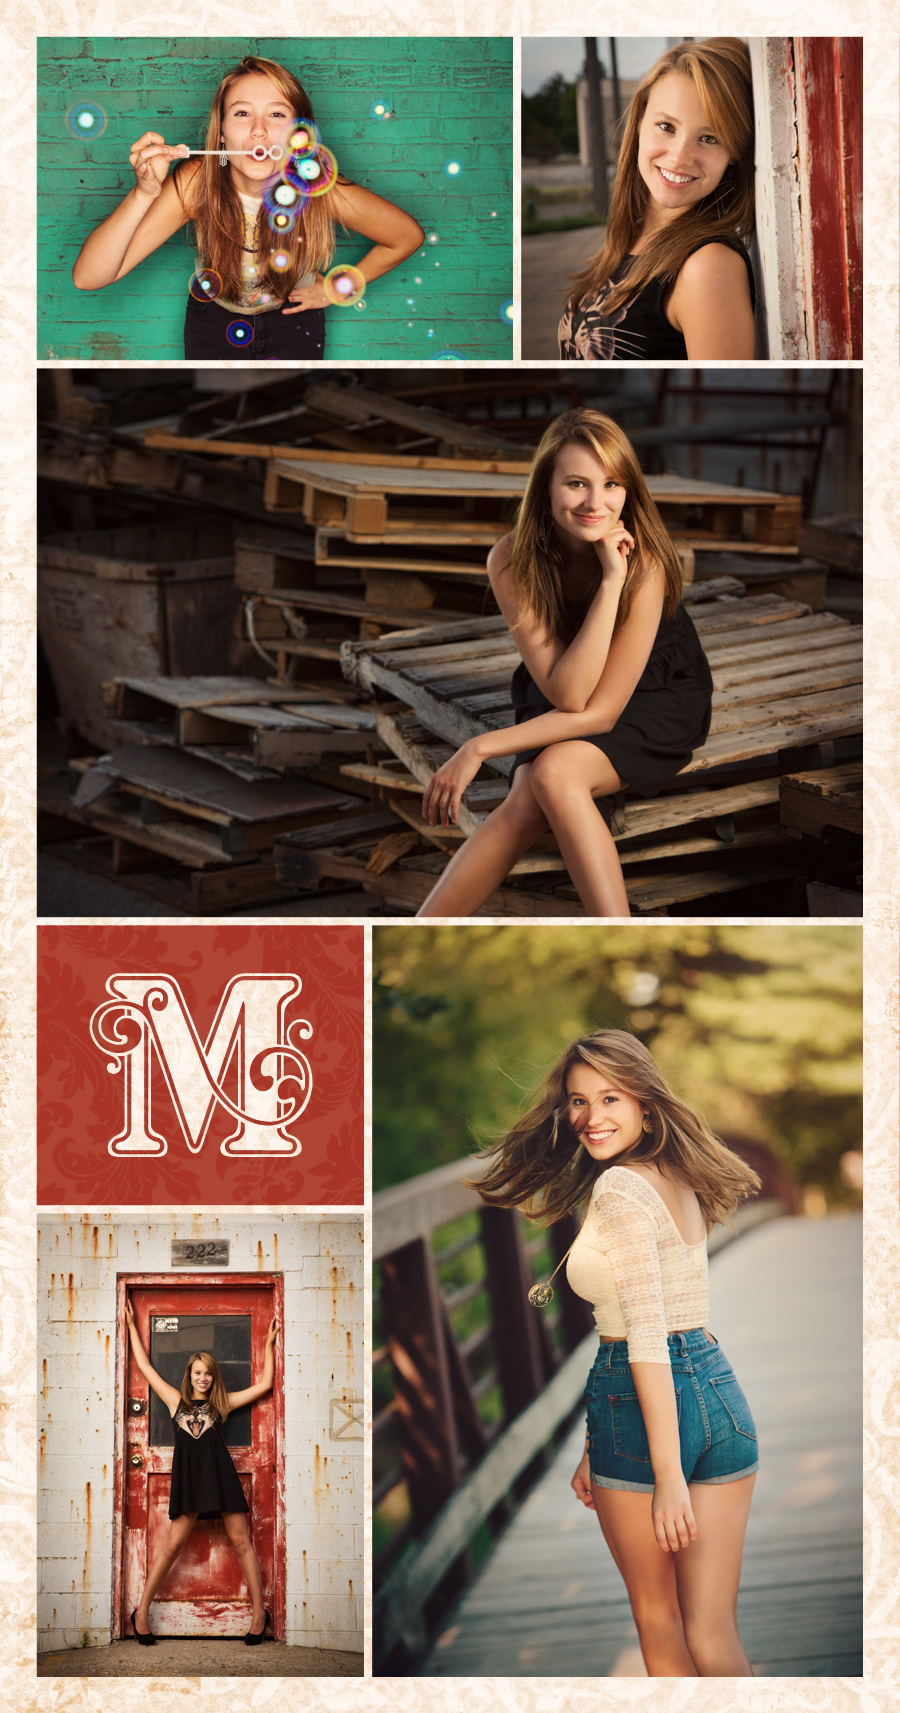 Senior photos from McClanahan Studio in Ames Iowa. Fun, beautiful, fashion inspired imagery